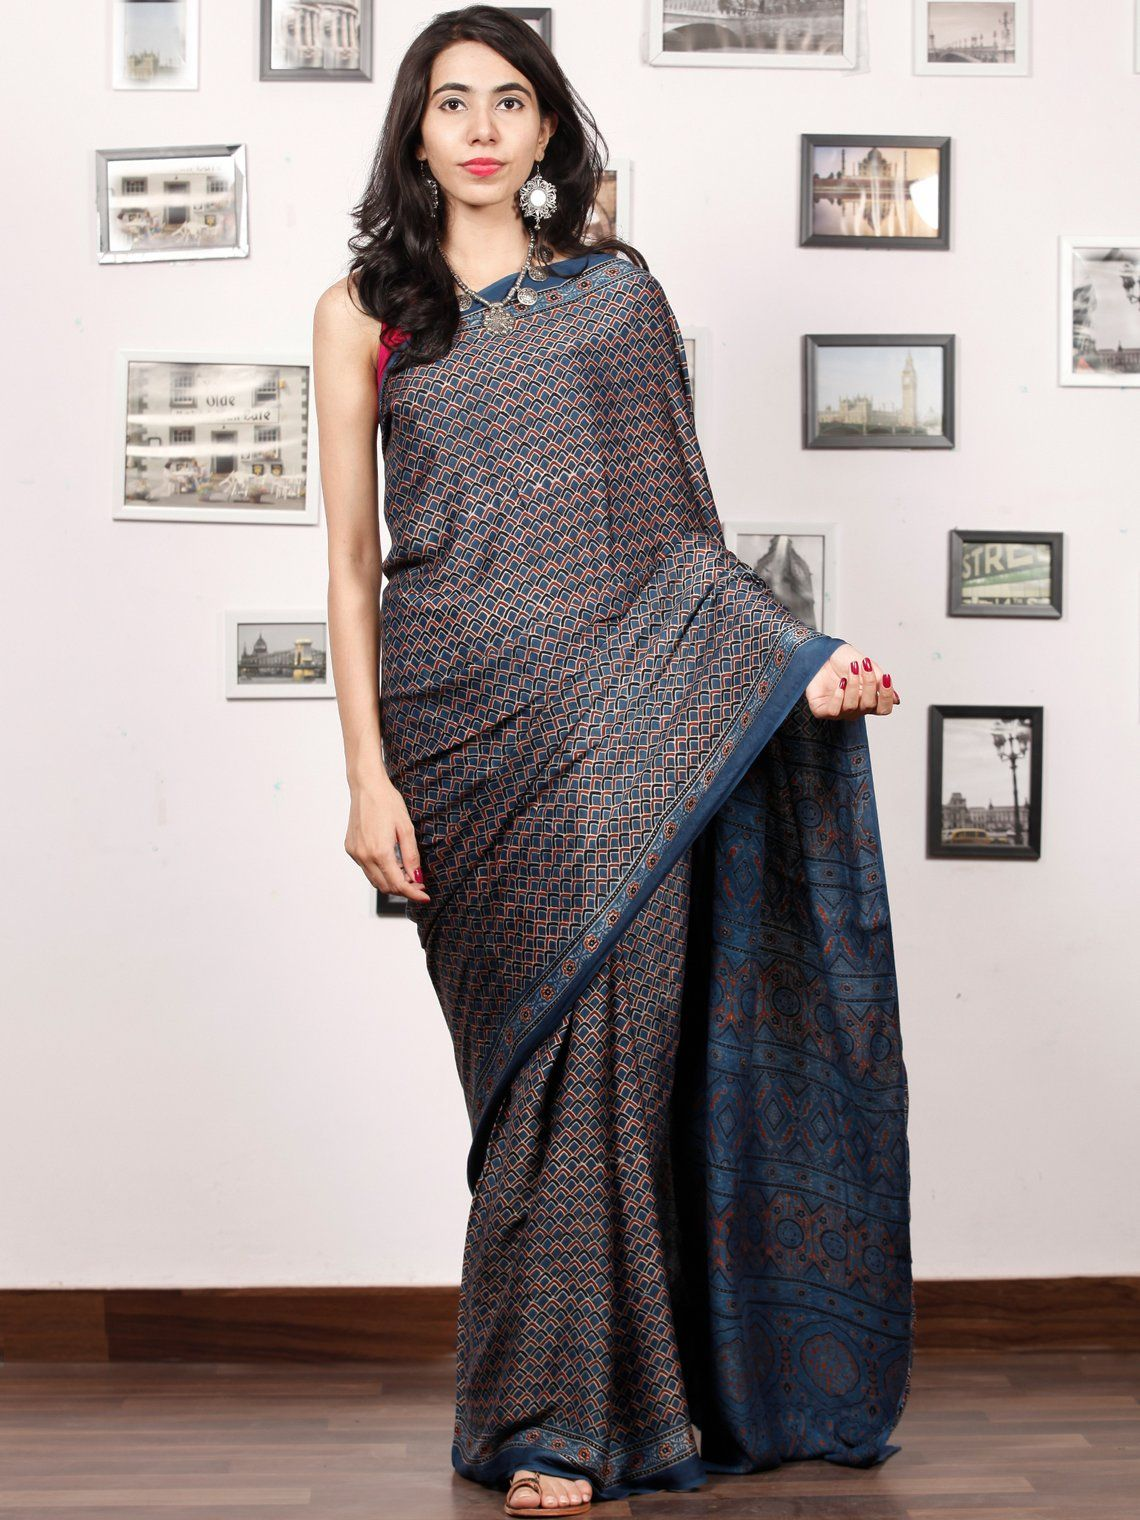 f349f33032256 Indigo Rust Black Ajrakh Hand Block Printed Modal Silk Saree in Natural  Colors - S031703380